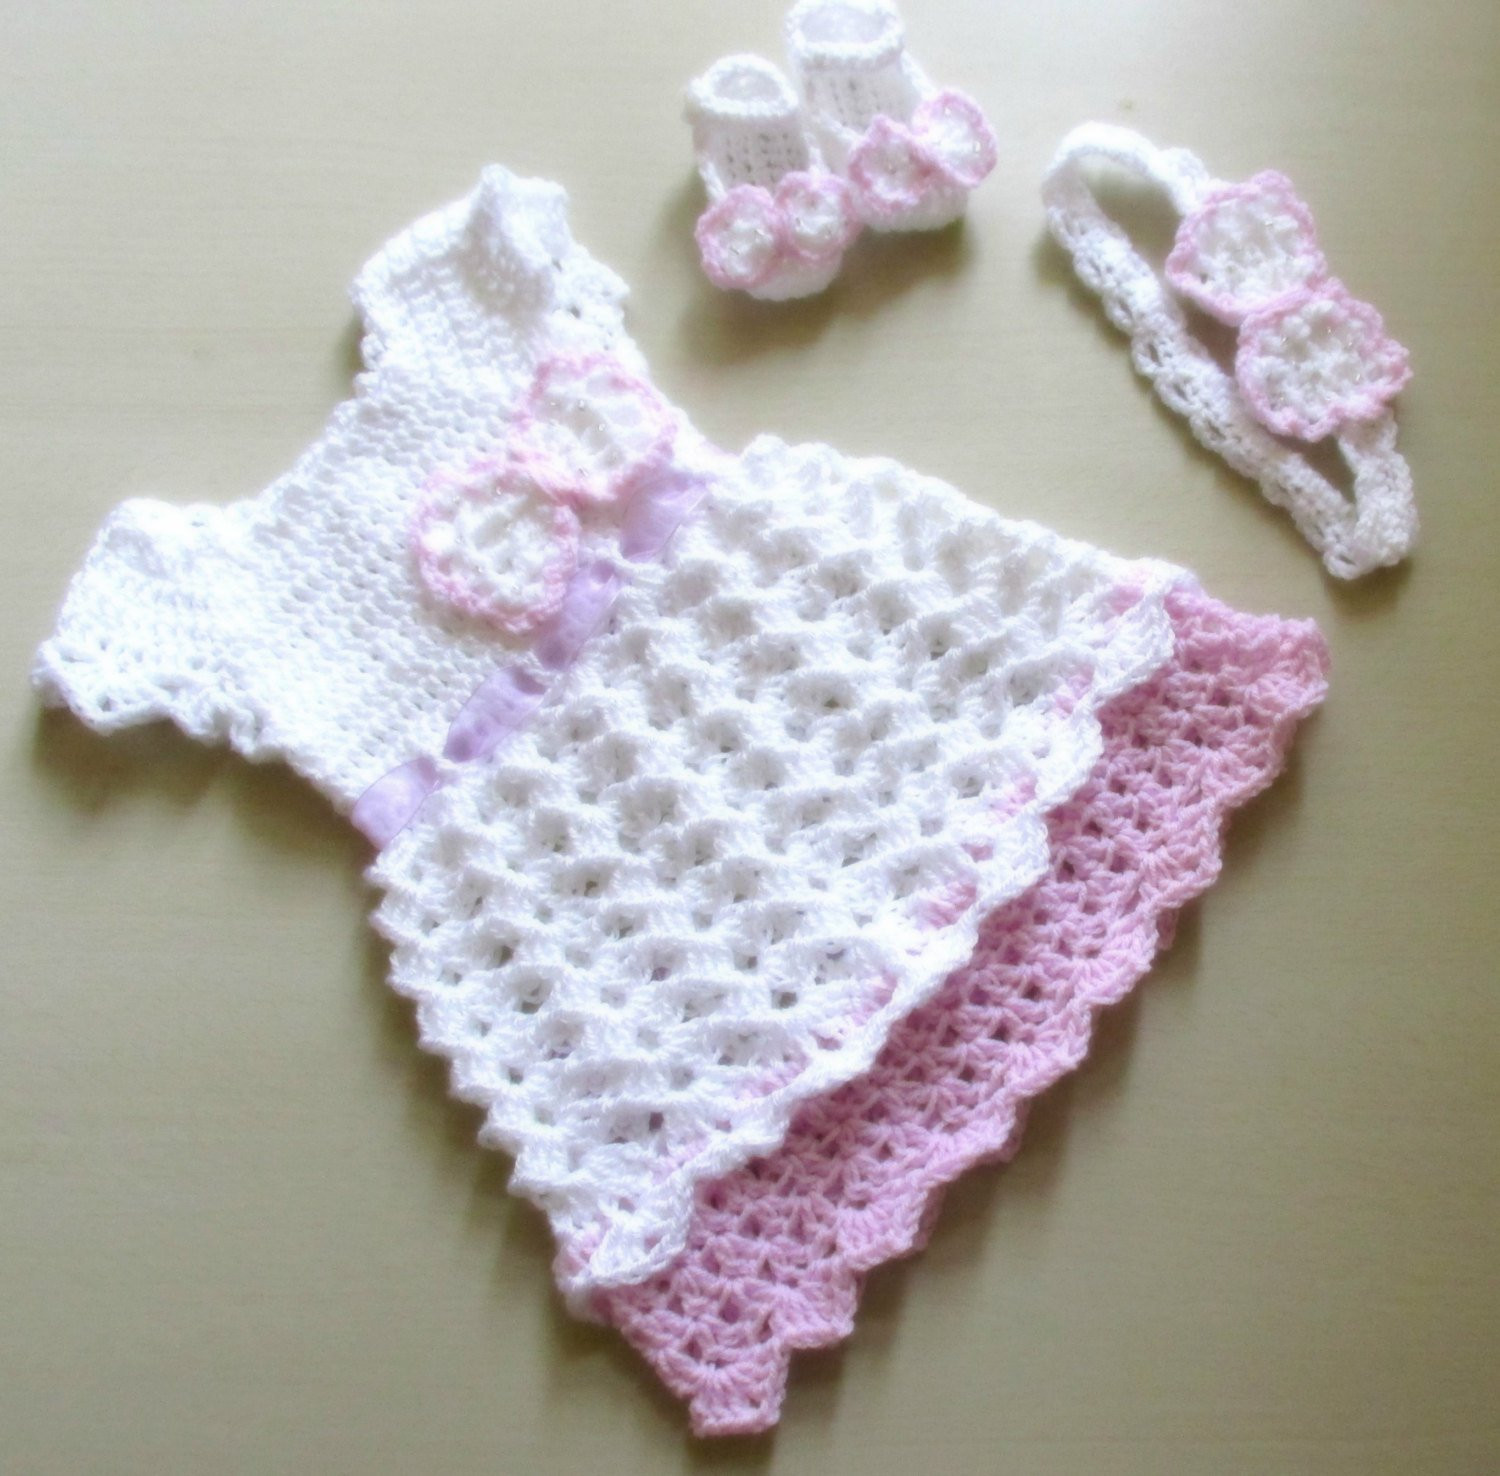 Crochet Baby Clothing Lovely Crochet Baby Dress Baby Dress Headband and Shoes Crochet Of Amazing 44 Ideas Crochet Baby Clothing